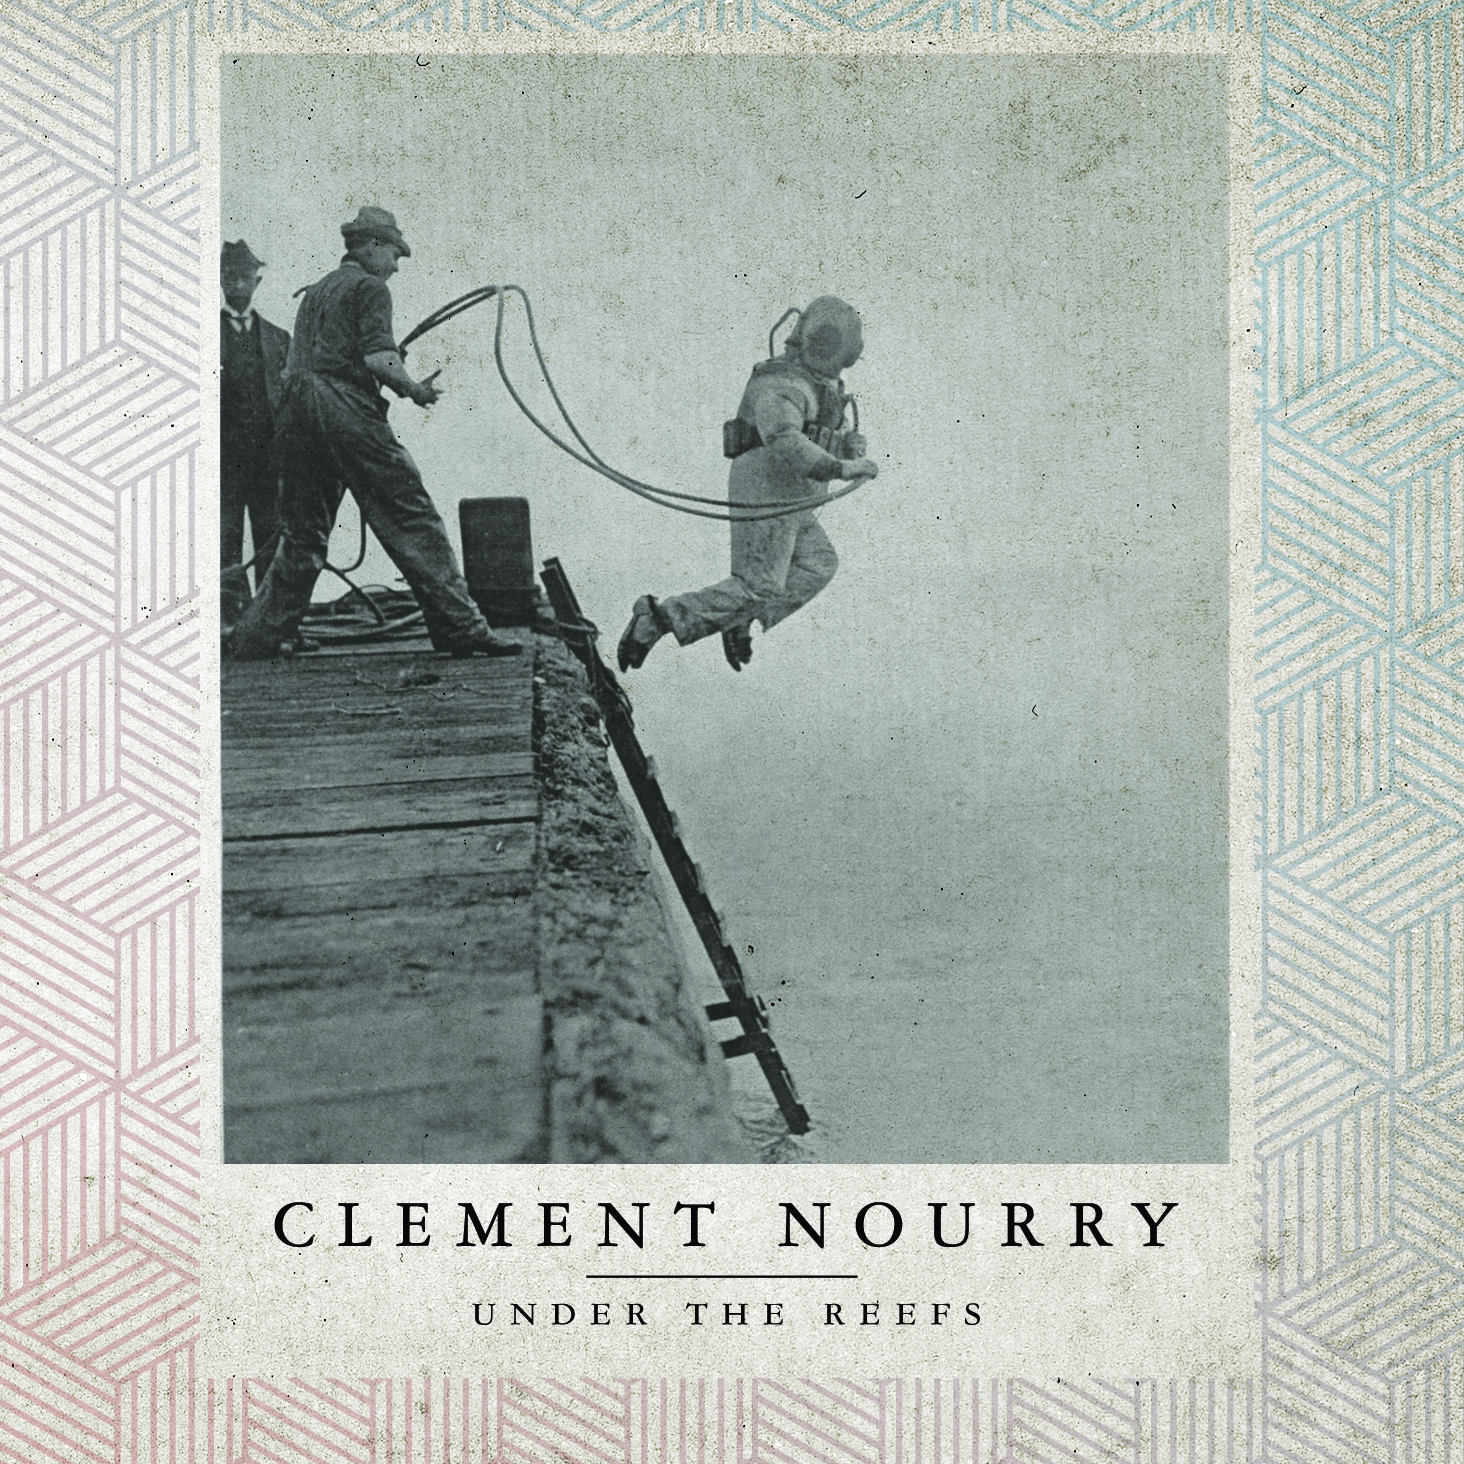 CLEMENT NOURRY - UNDER THE REEFS